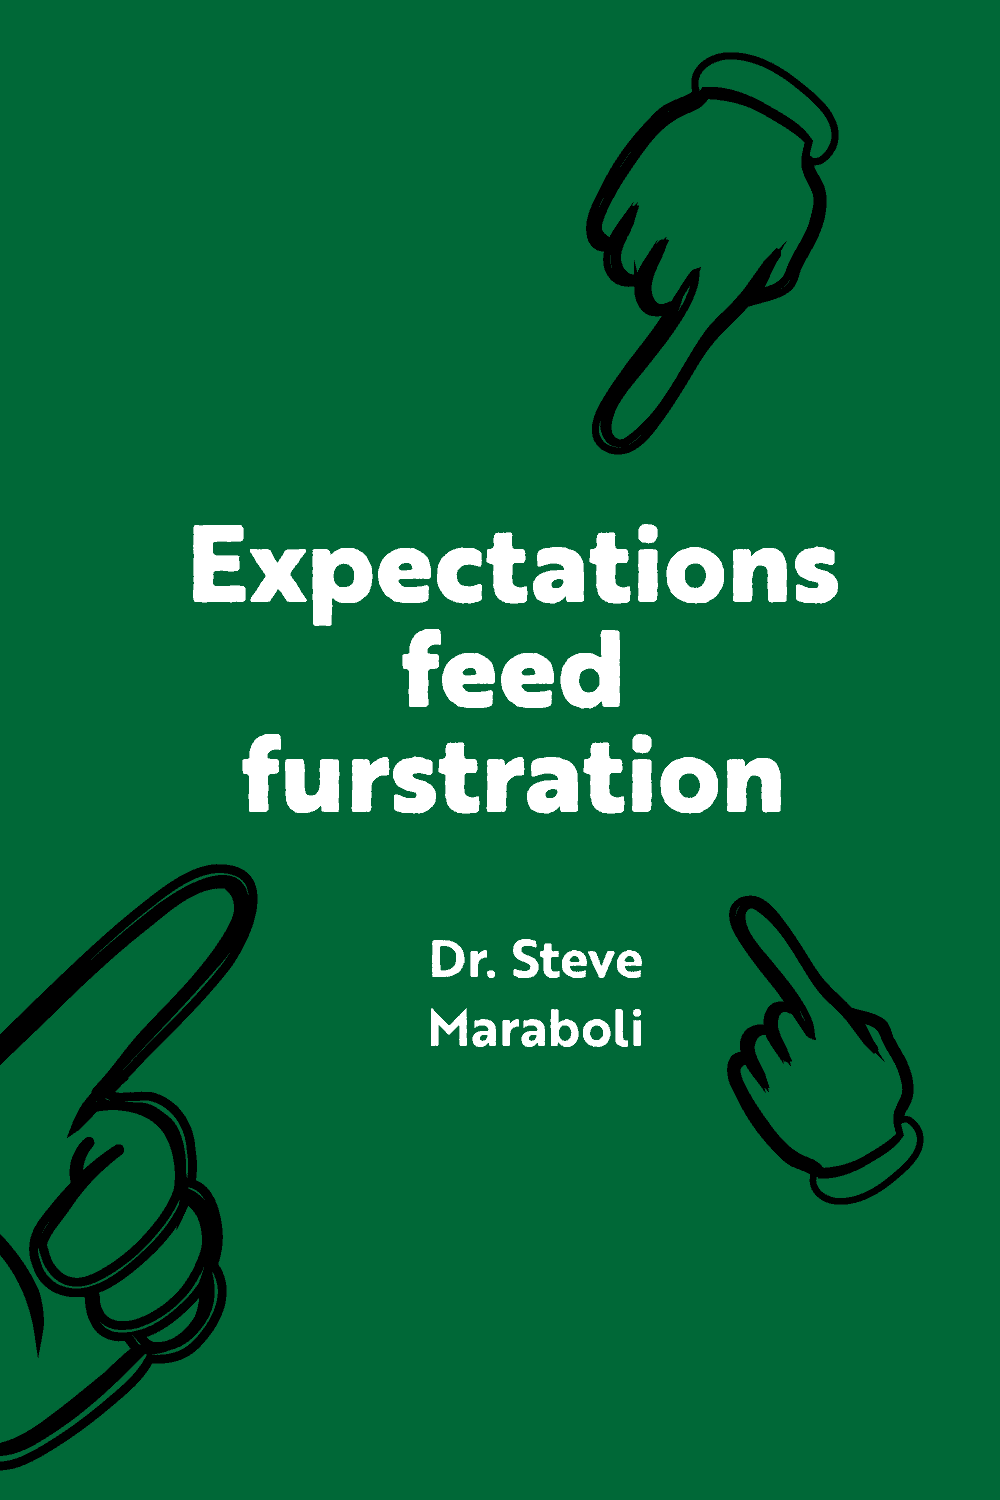 fingers-pointing-image-with-green-background-and-white-text-on-expectations-at-age-30